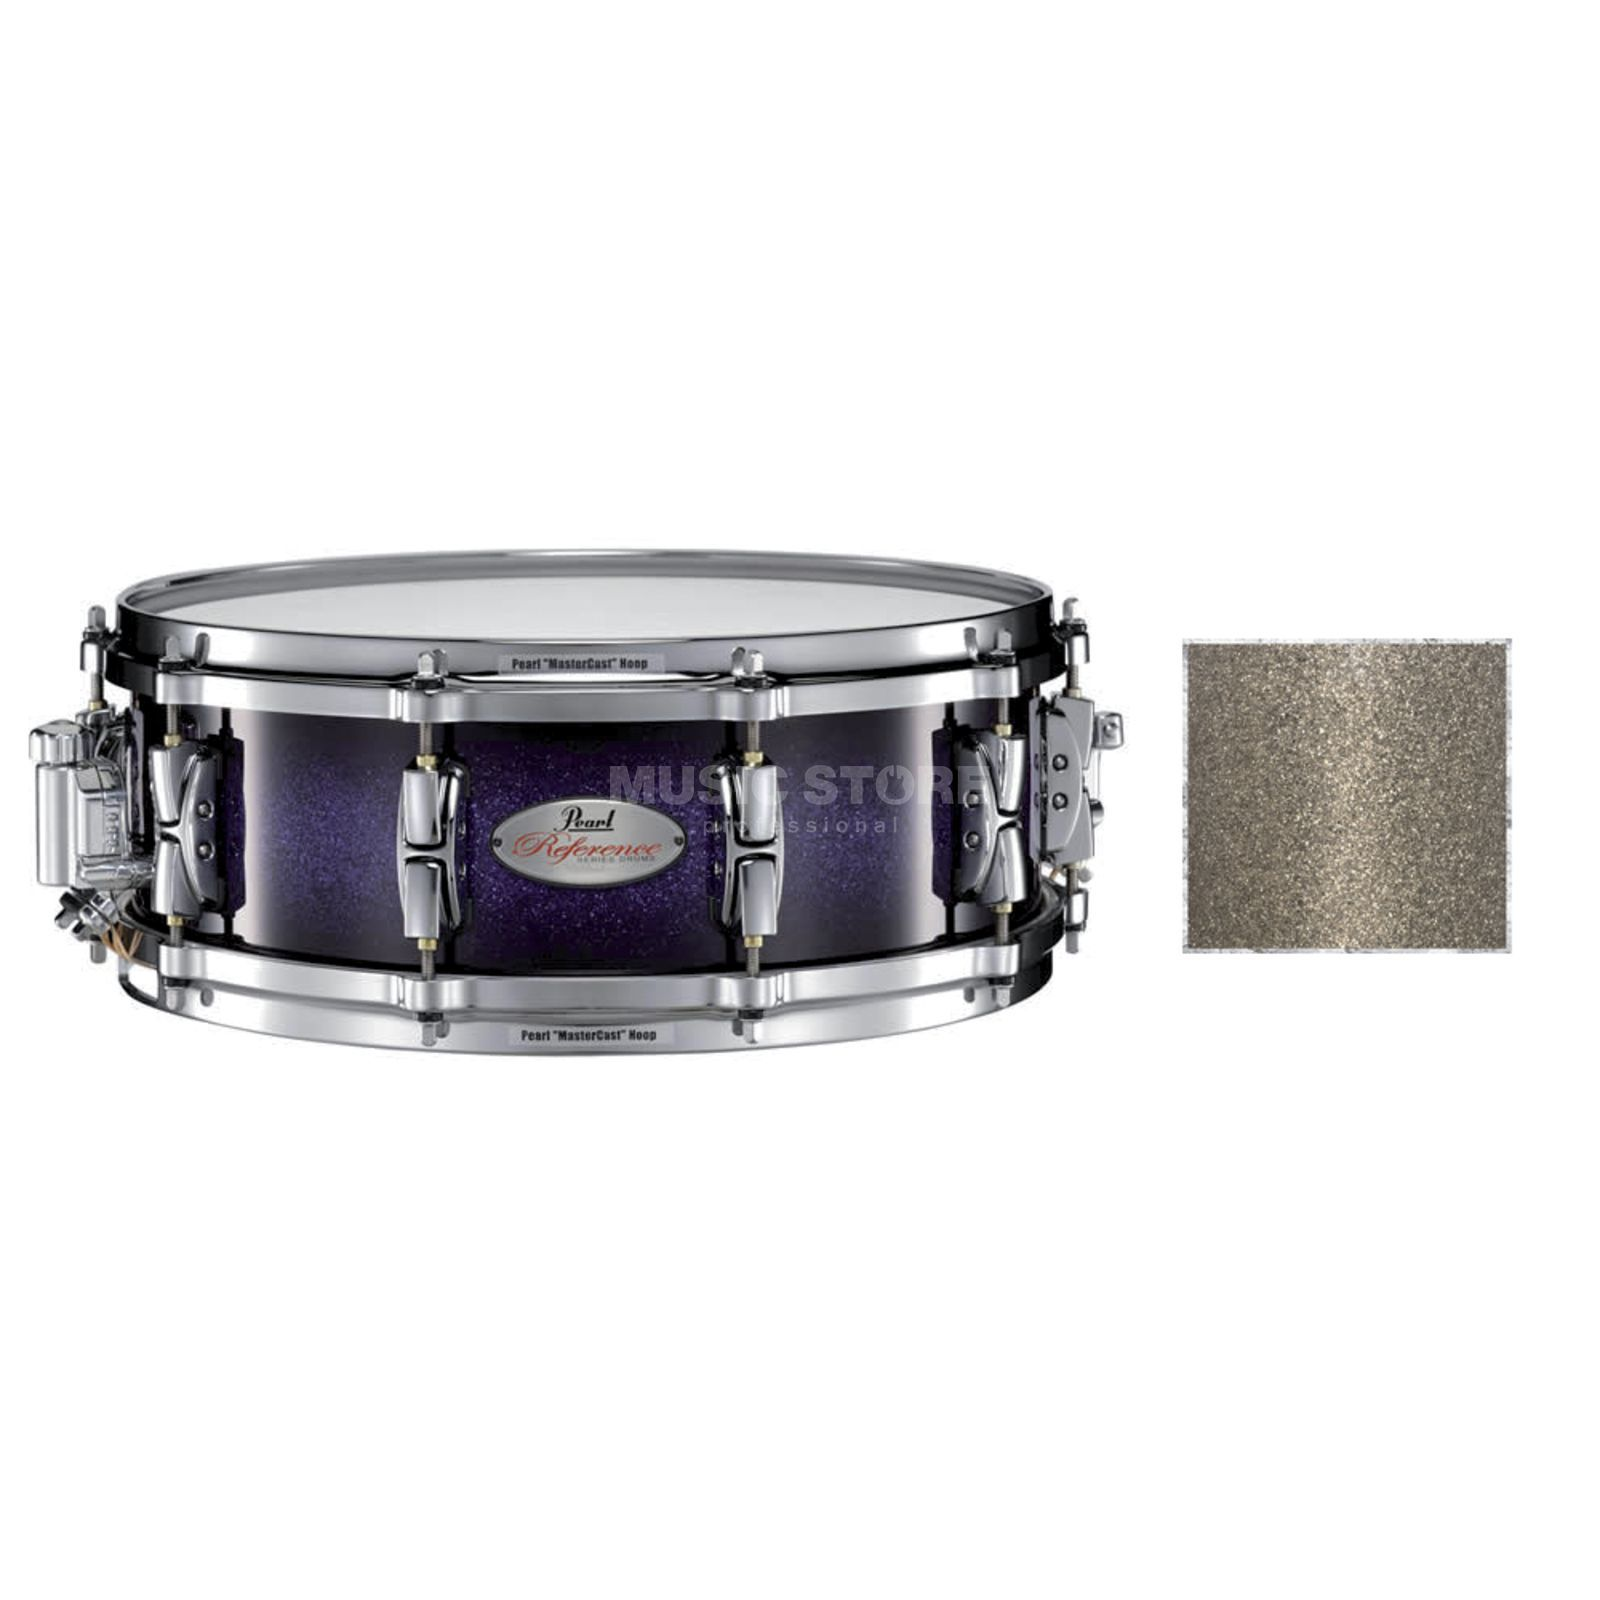 "Pearl RF1450S/C Reference Snare 14""x5"", Pewter Glass #409 Produktbillede"